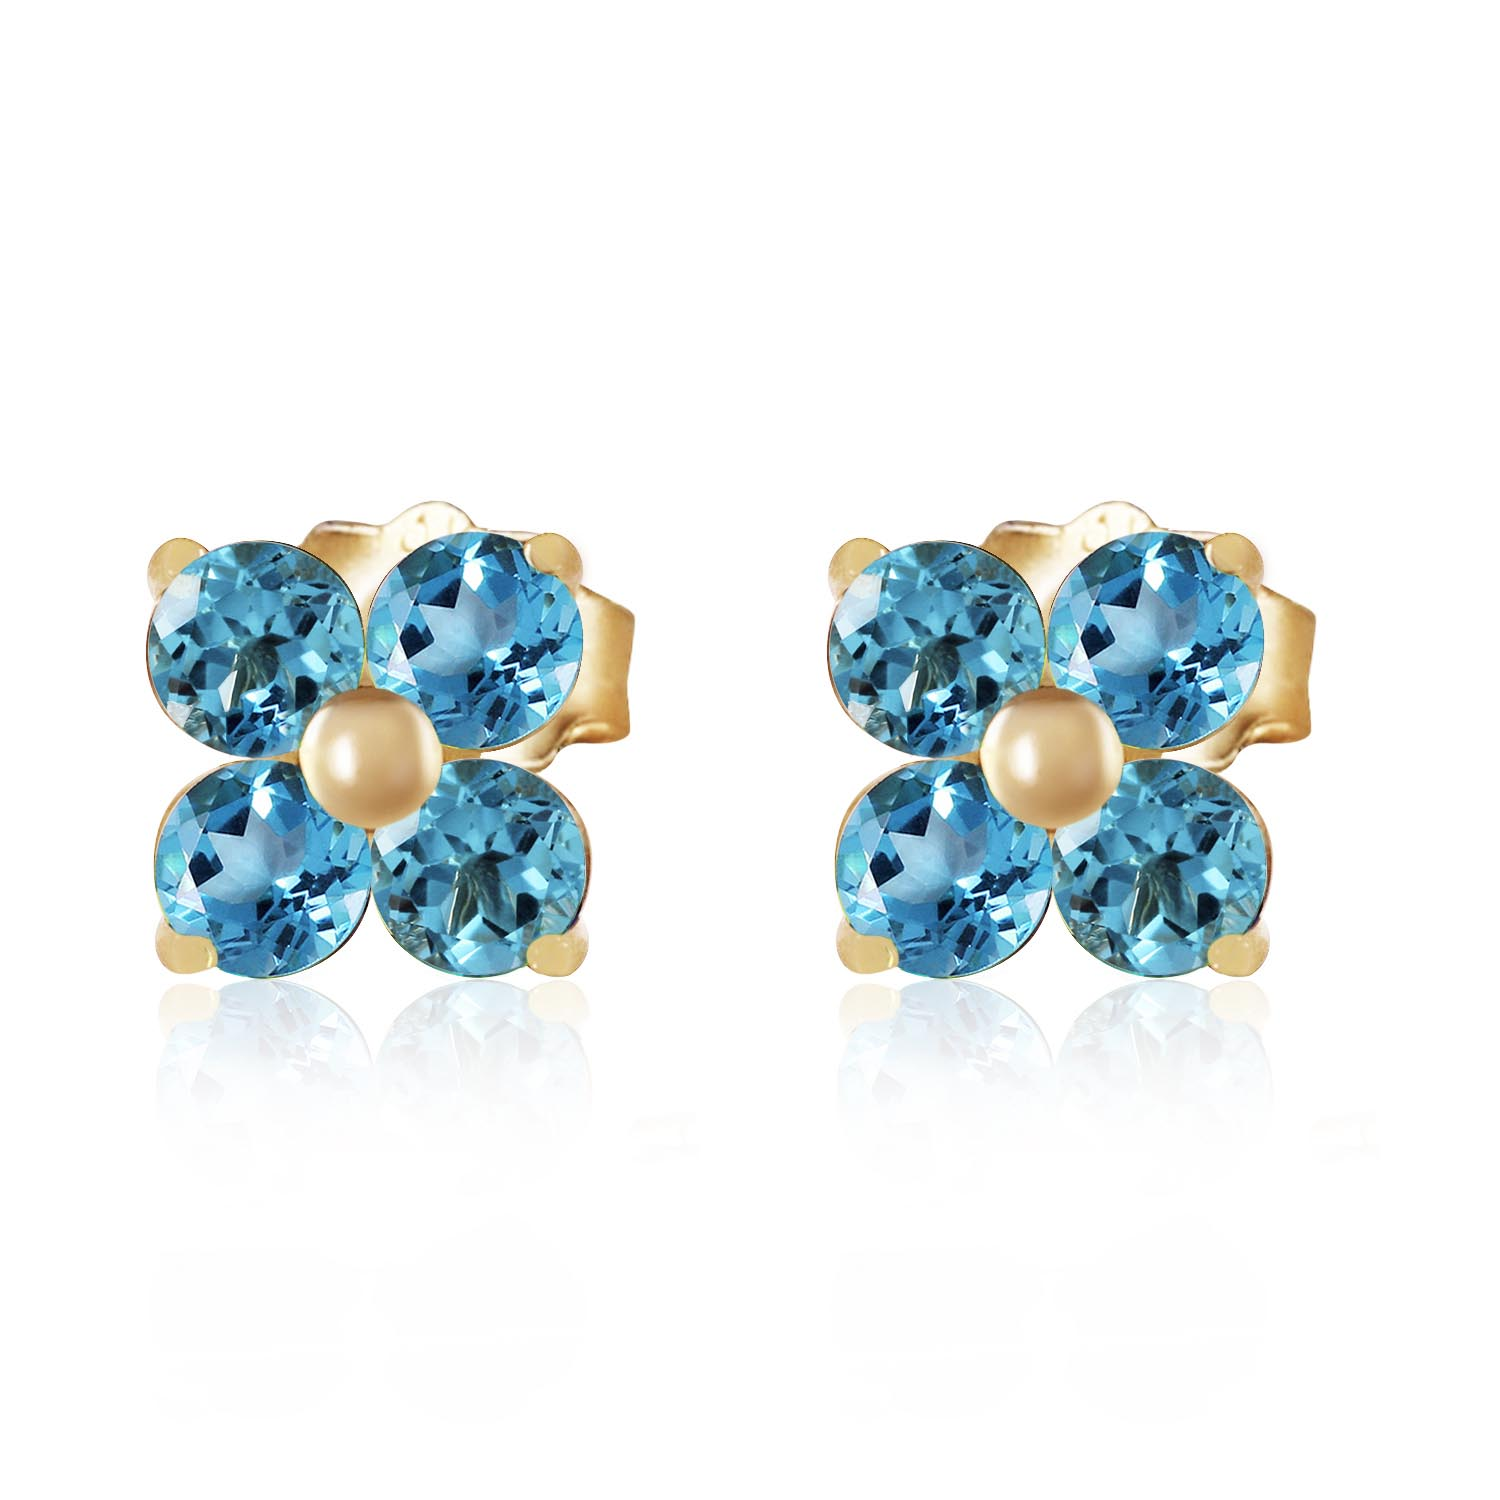 Blue Topaz Clover Stud Earrings 1.15ctw in 9ct Gold